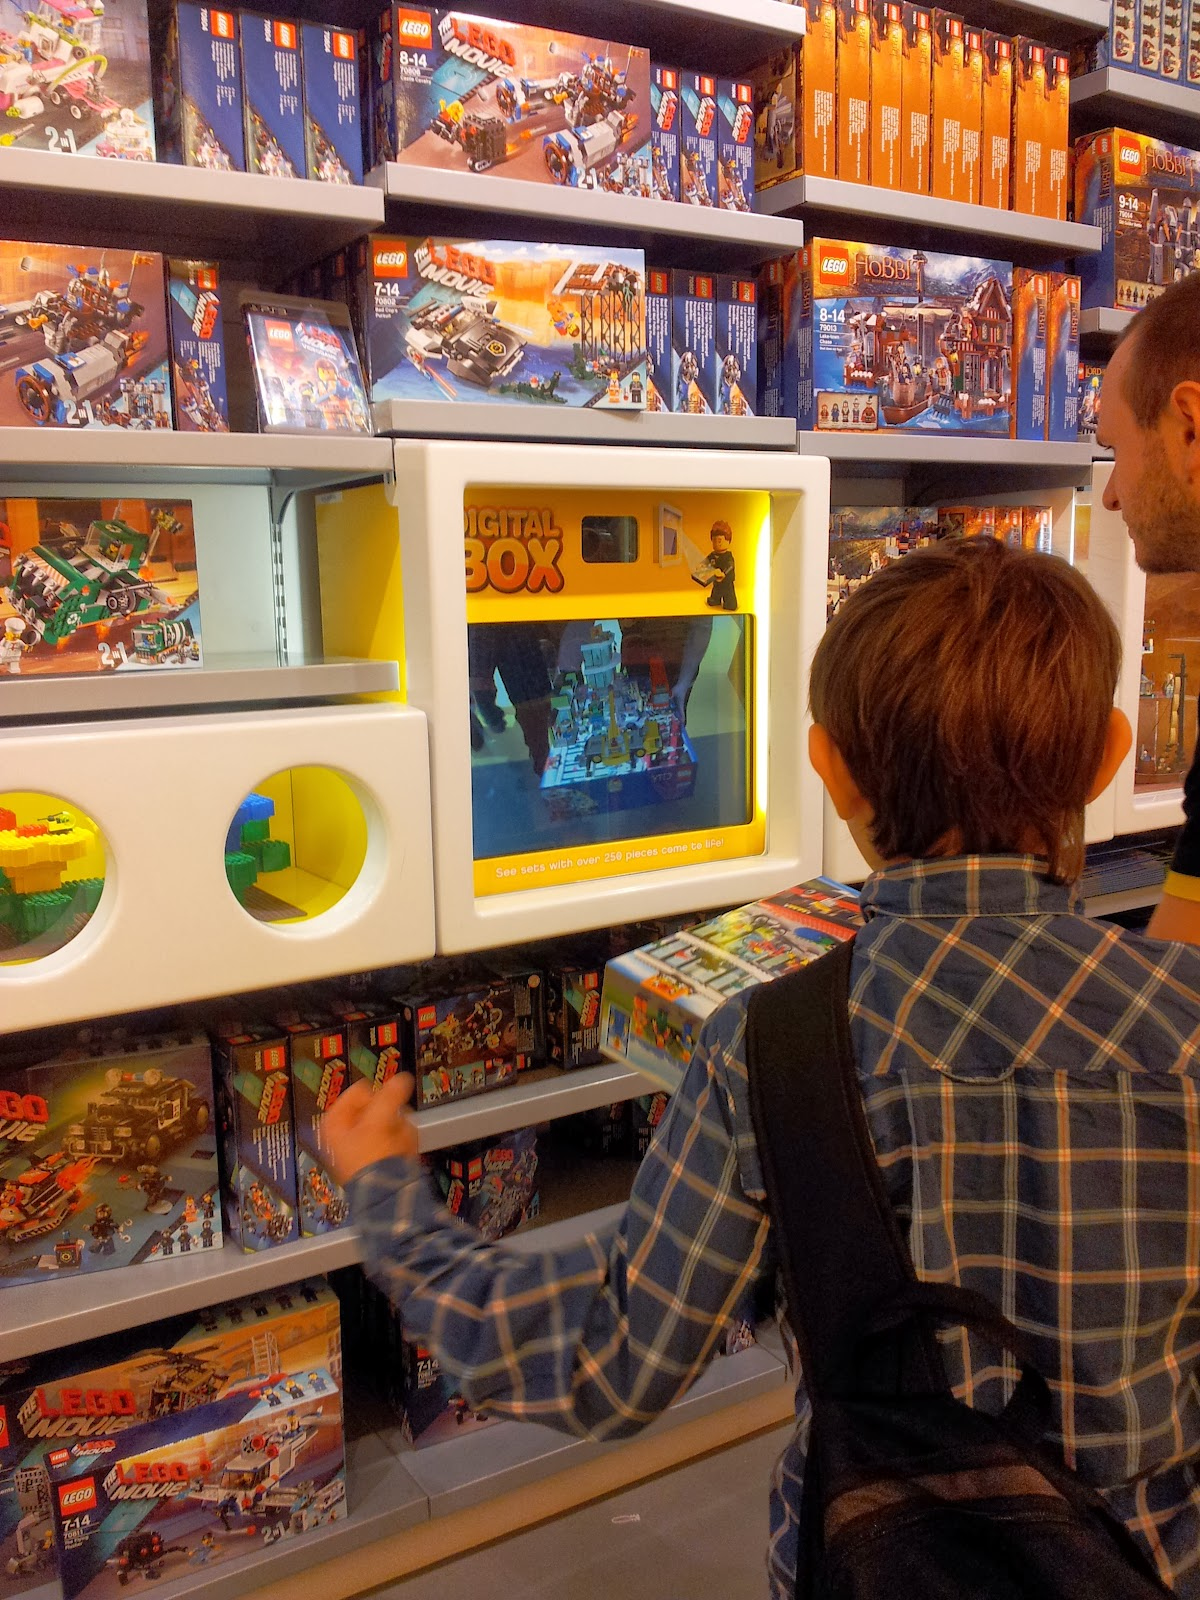 Cardiff Half Term St Davids Centre Wales Lego Stores Pick n Mix Digital Box